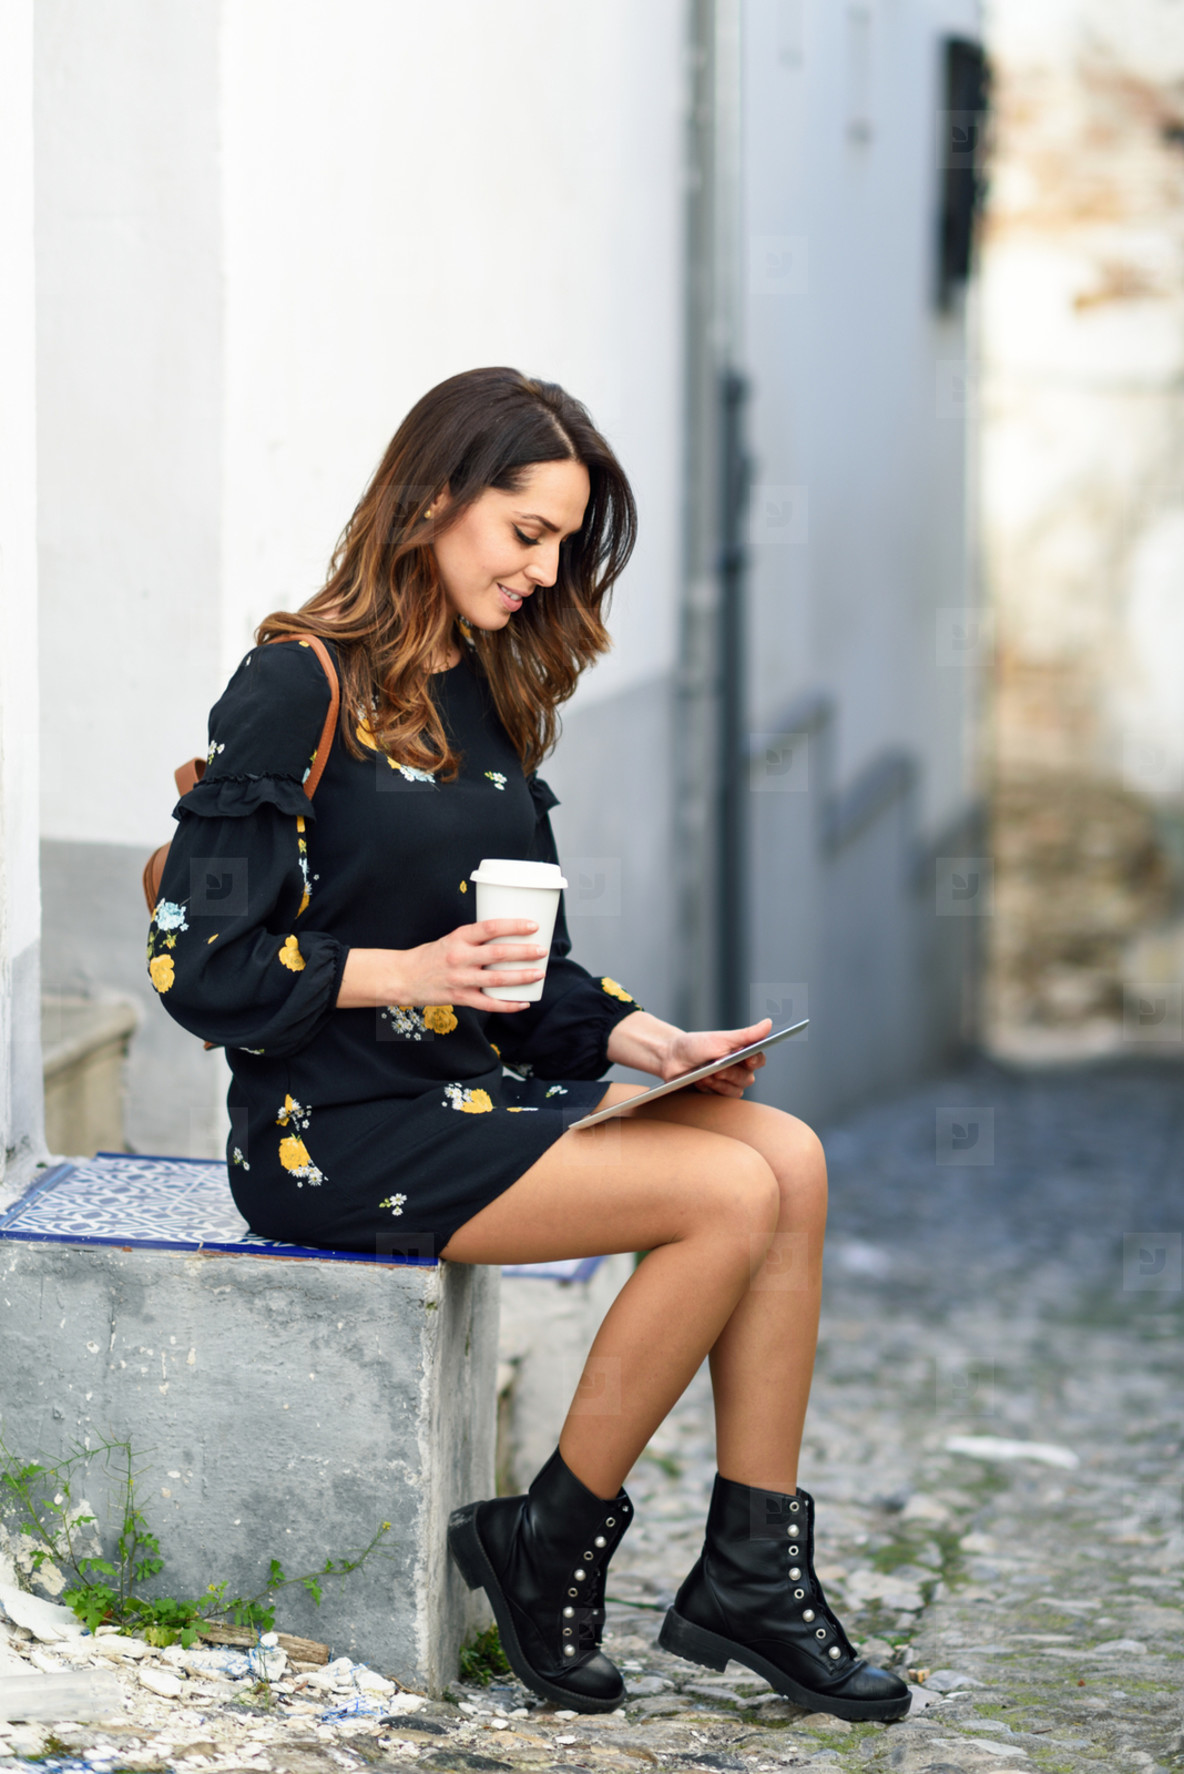 Middle aged young woman using digital tablet outdoors